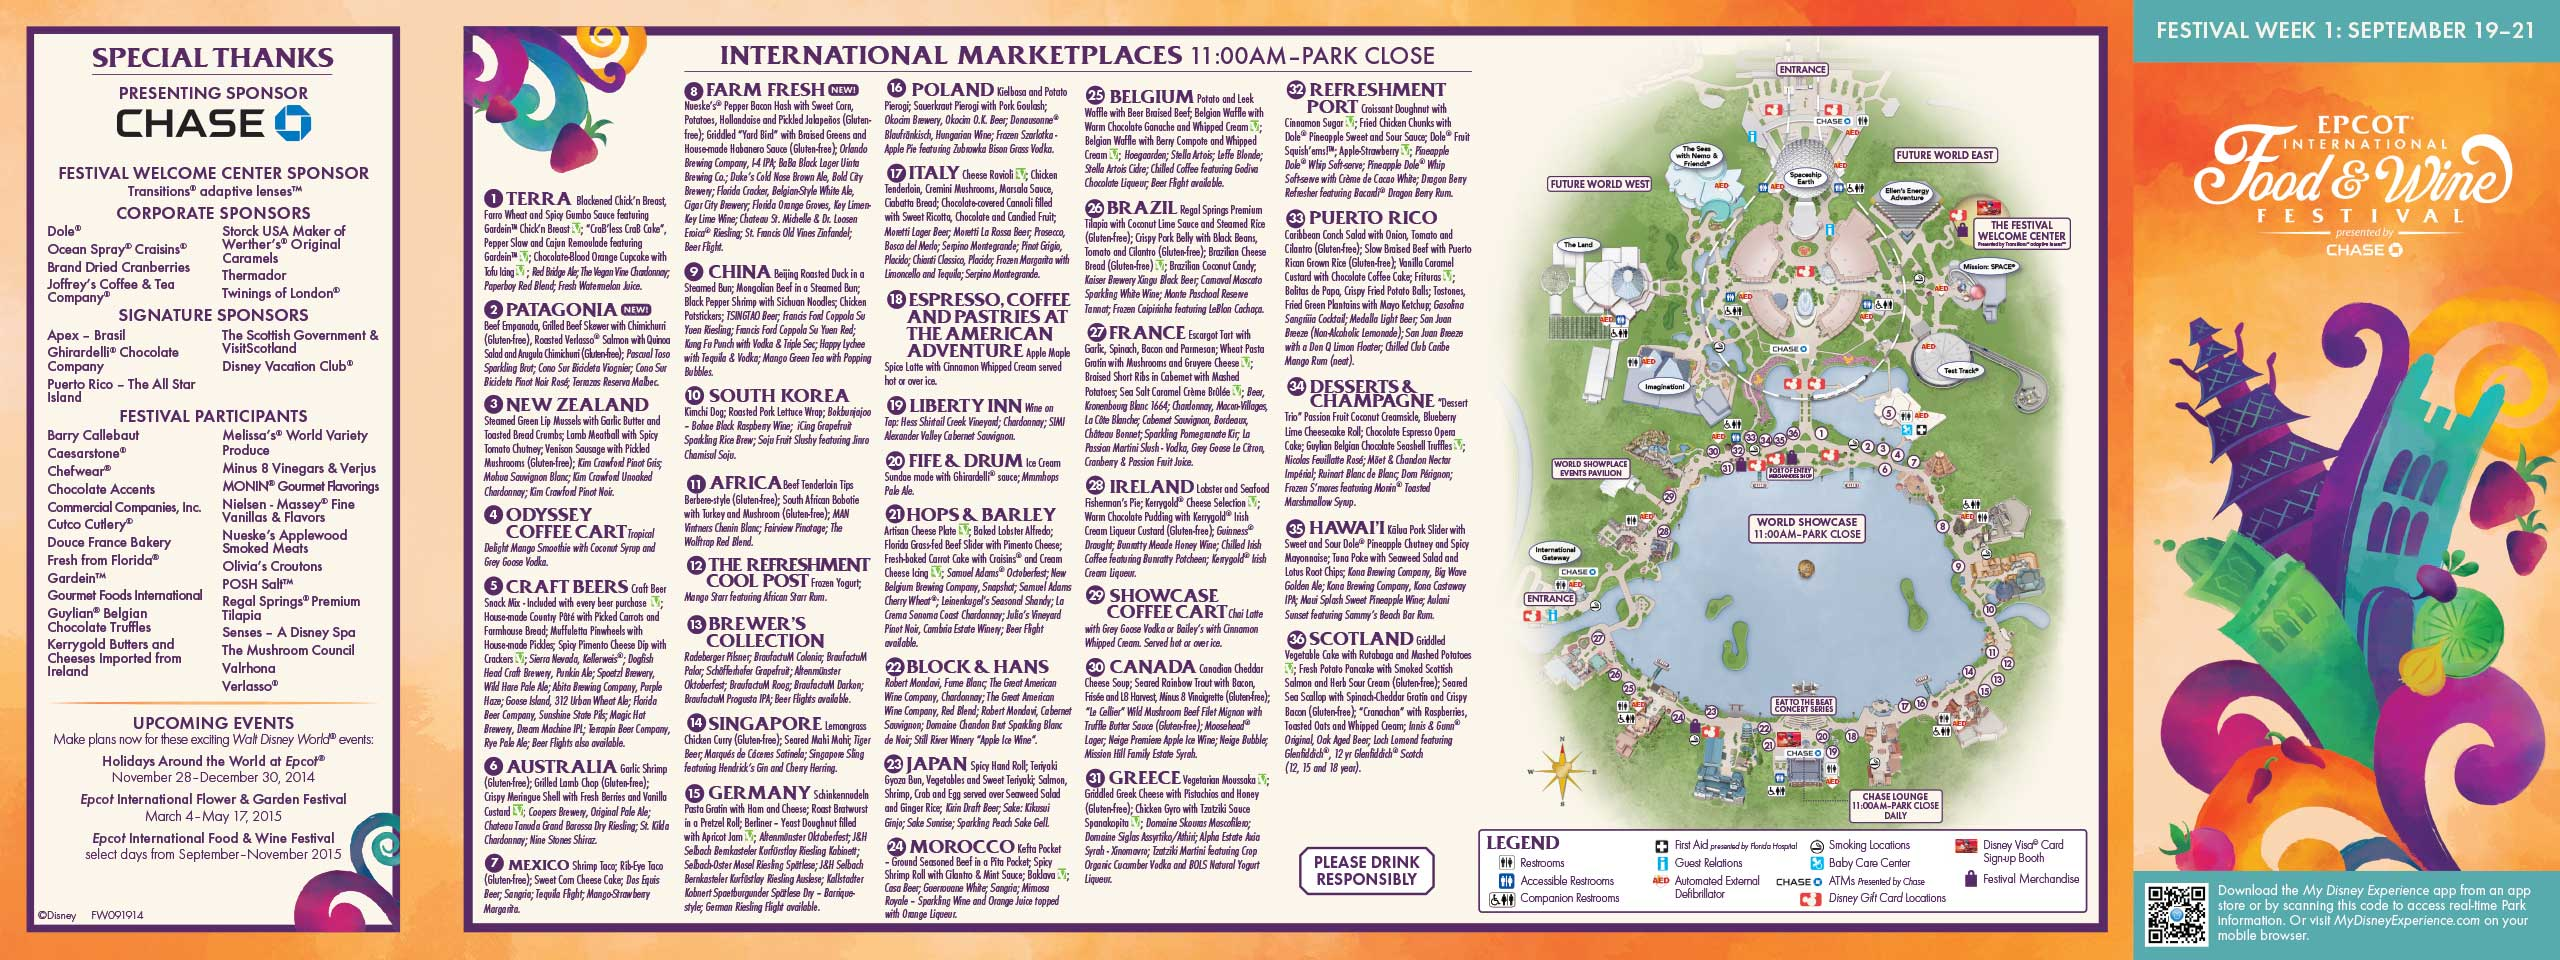 2014 Epcot International Food and Wine Festival 2014 Guide Map - Week 1 front